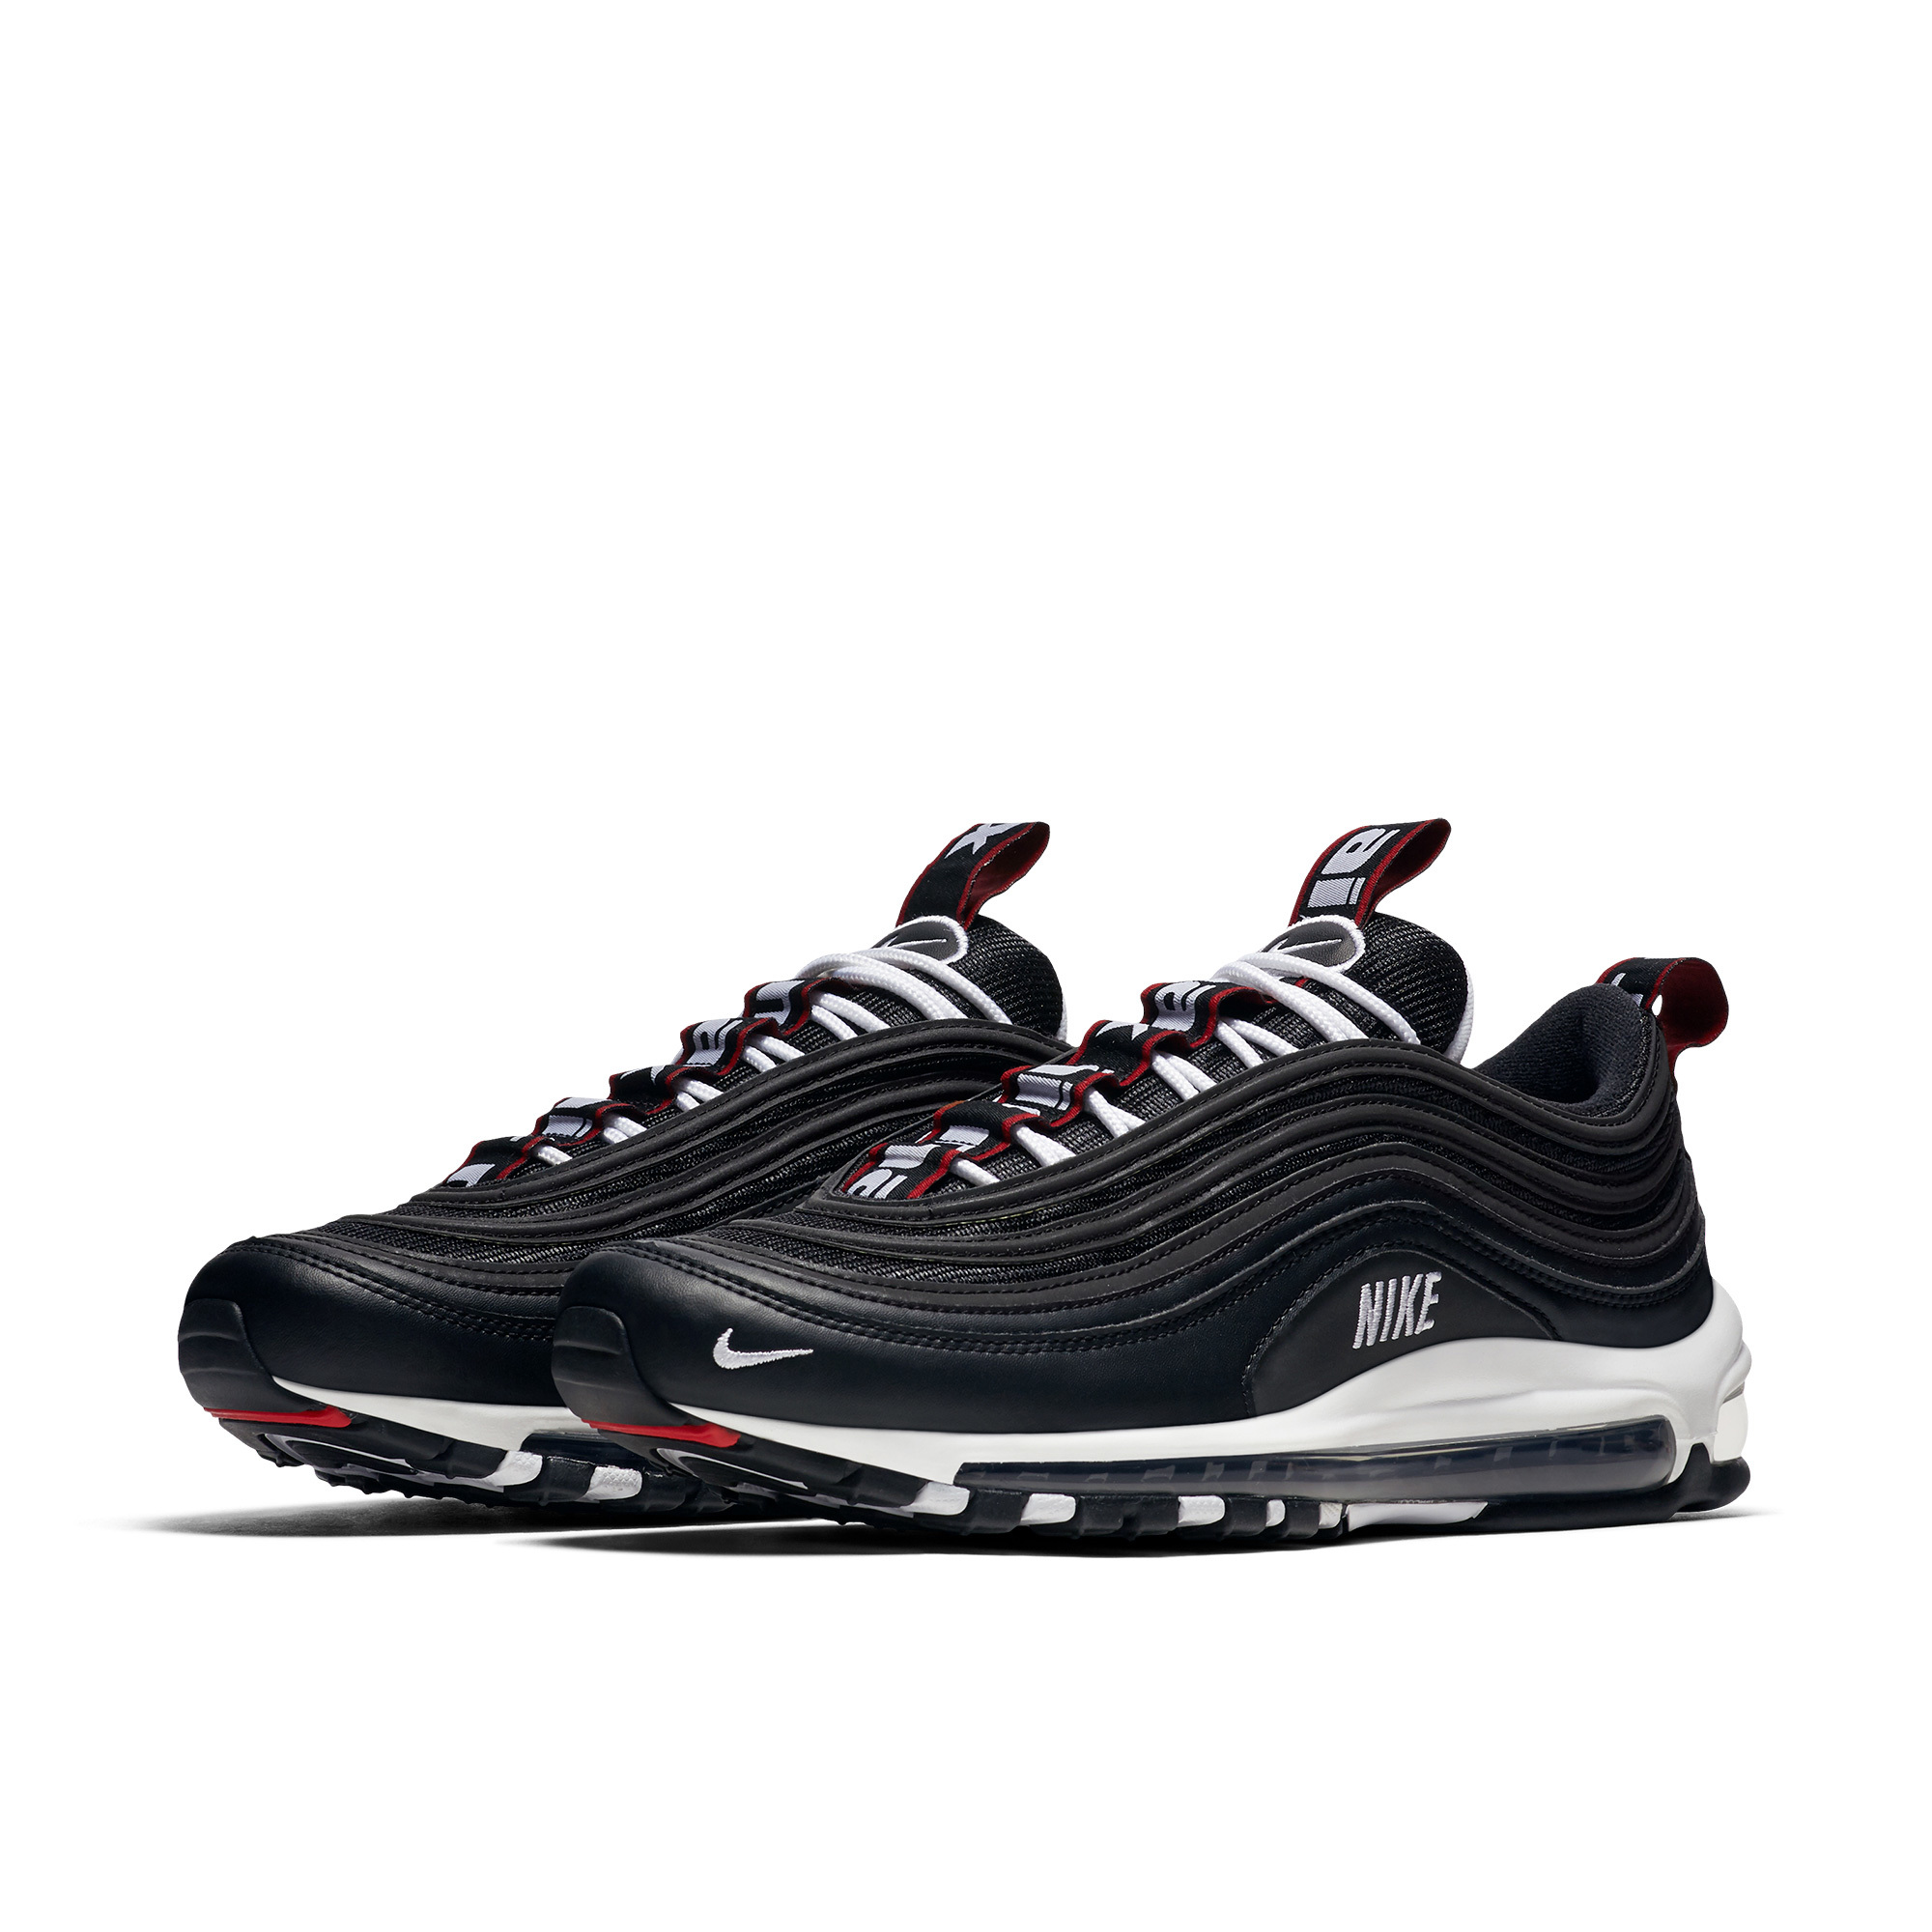 US $65.7 70% OFF|NIKE AIR MAX 97 PREMIUM Men Running Shoes Comfortable Breathable Shock Absorption Sneakers #312834 008 in Running Shoes from Sports &